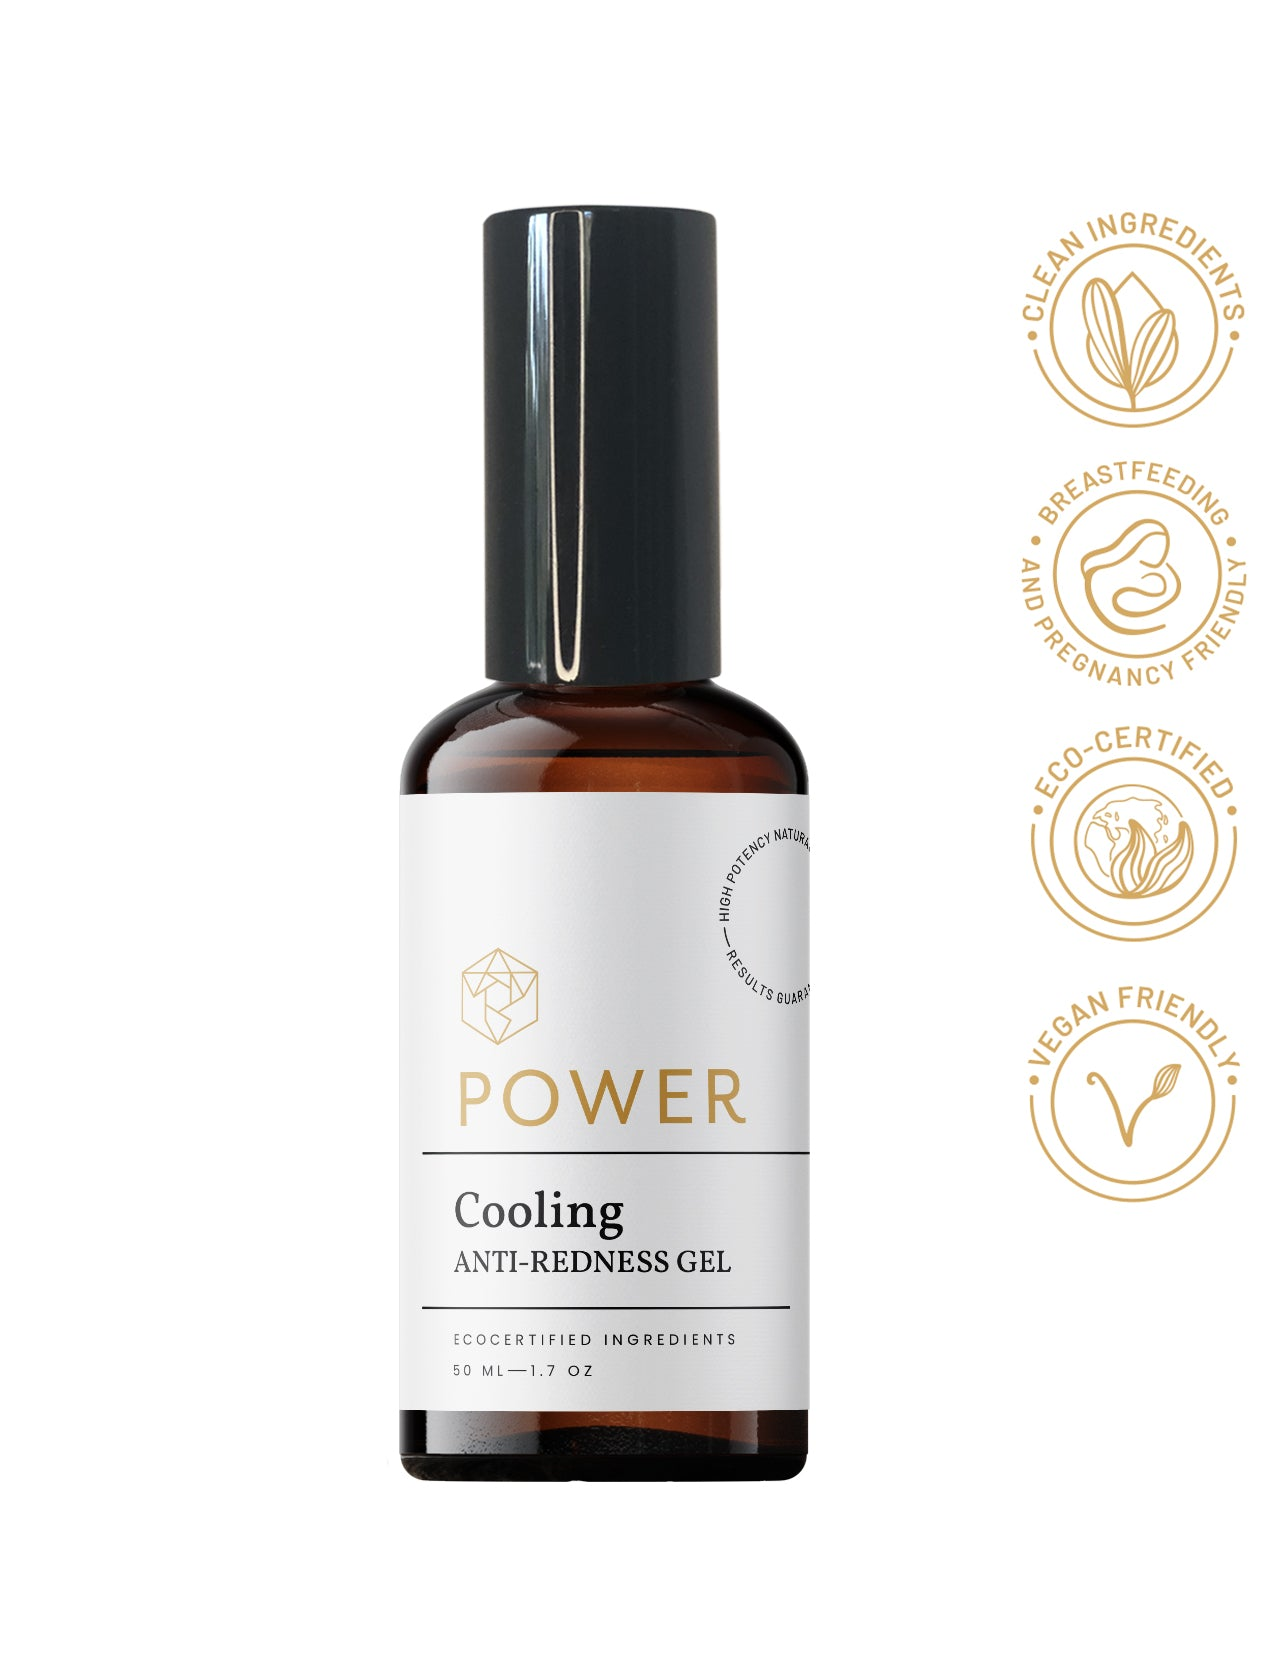 Cooling Anti-redness Gel for Rosacea by Power Skin Solutions